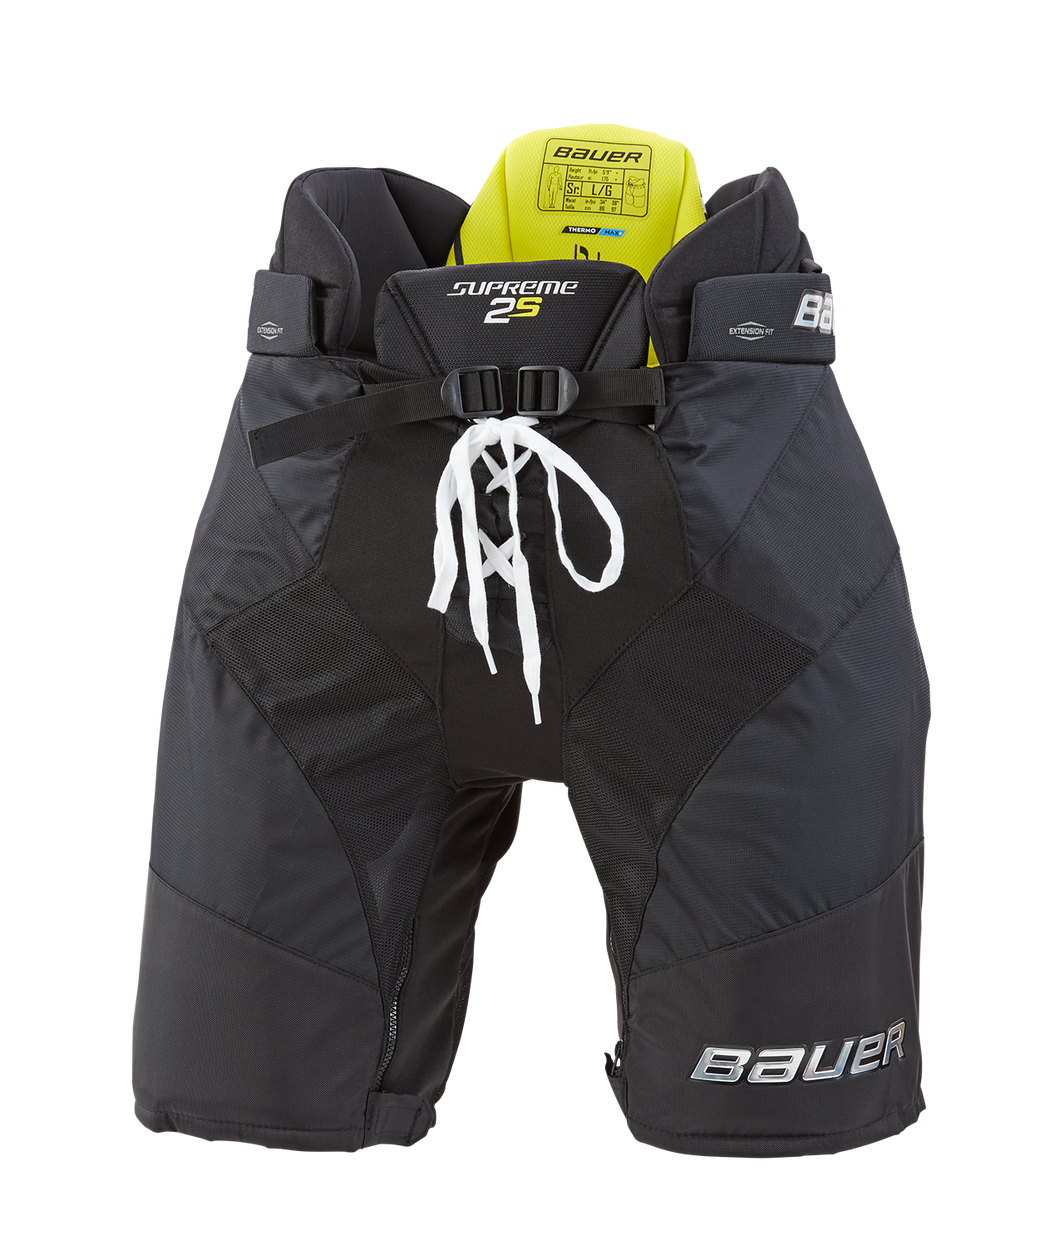 Bauer S19 SUPREME 2S Junior Hockey PANT